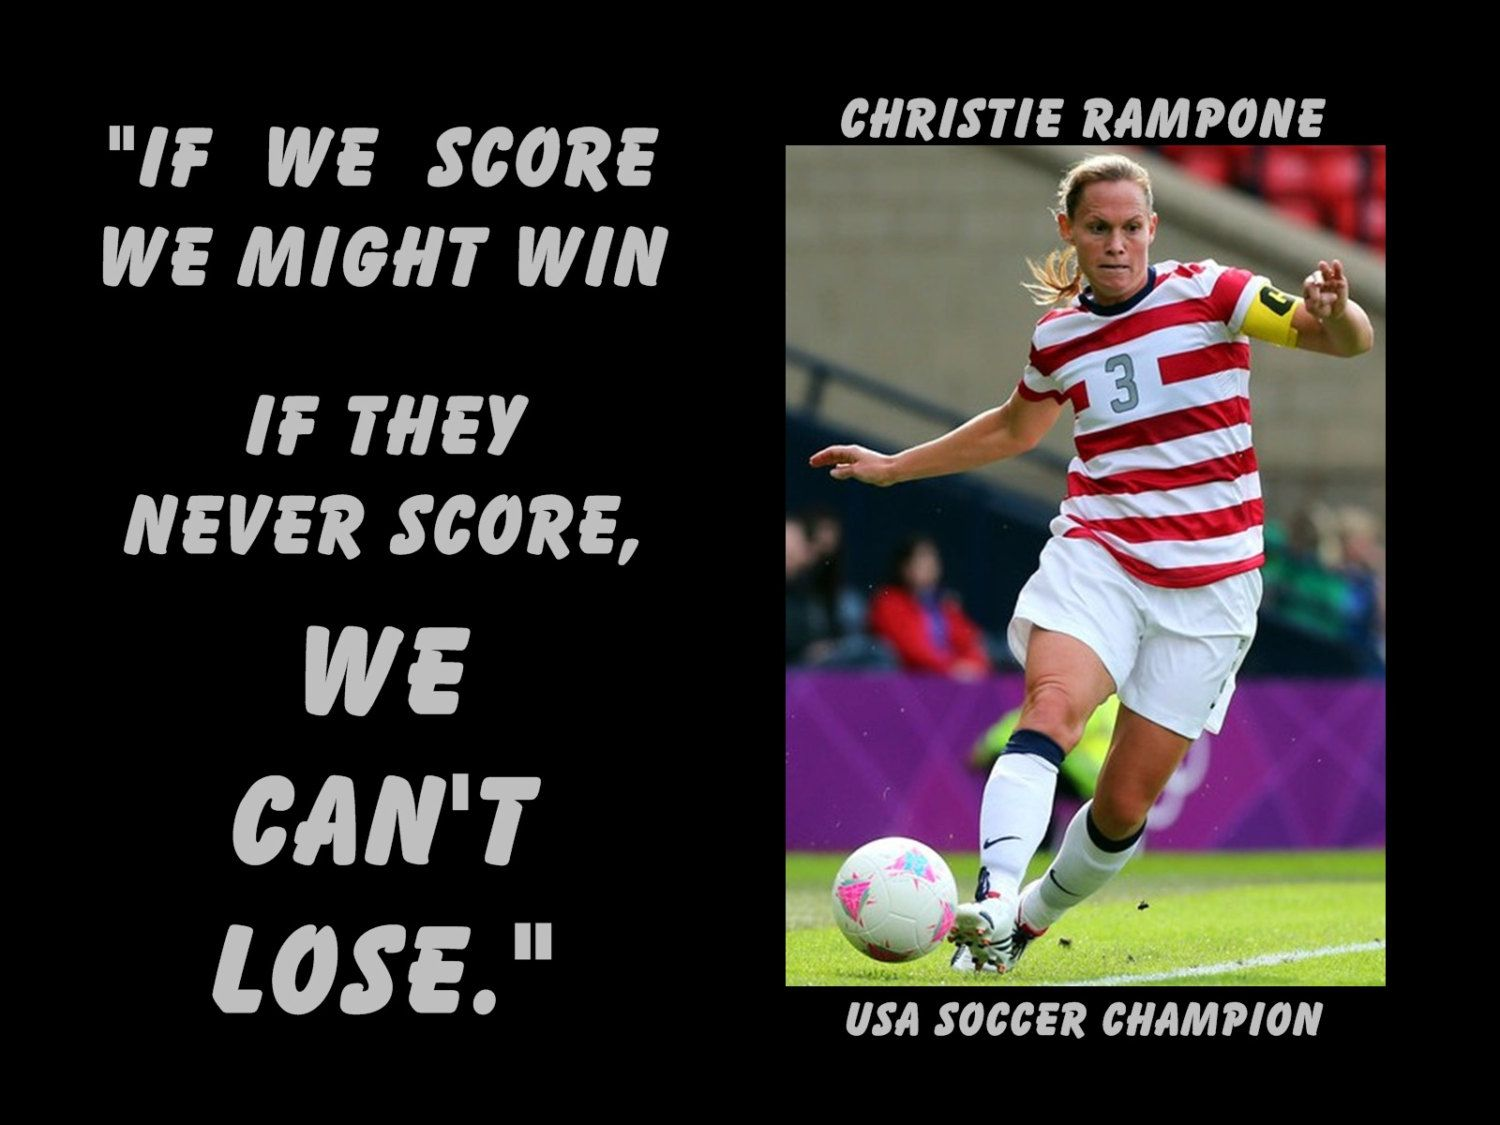 "Soccer Poster Christie Rampone Olympic Champion Photo Quote Wall Art Print 5x7""- 8x11"" If They Don't Score We Can't Lose - Free USA Ship by ArleyArtEmporium on Etsy"